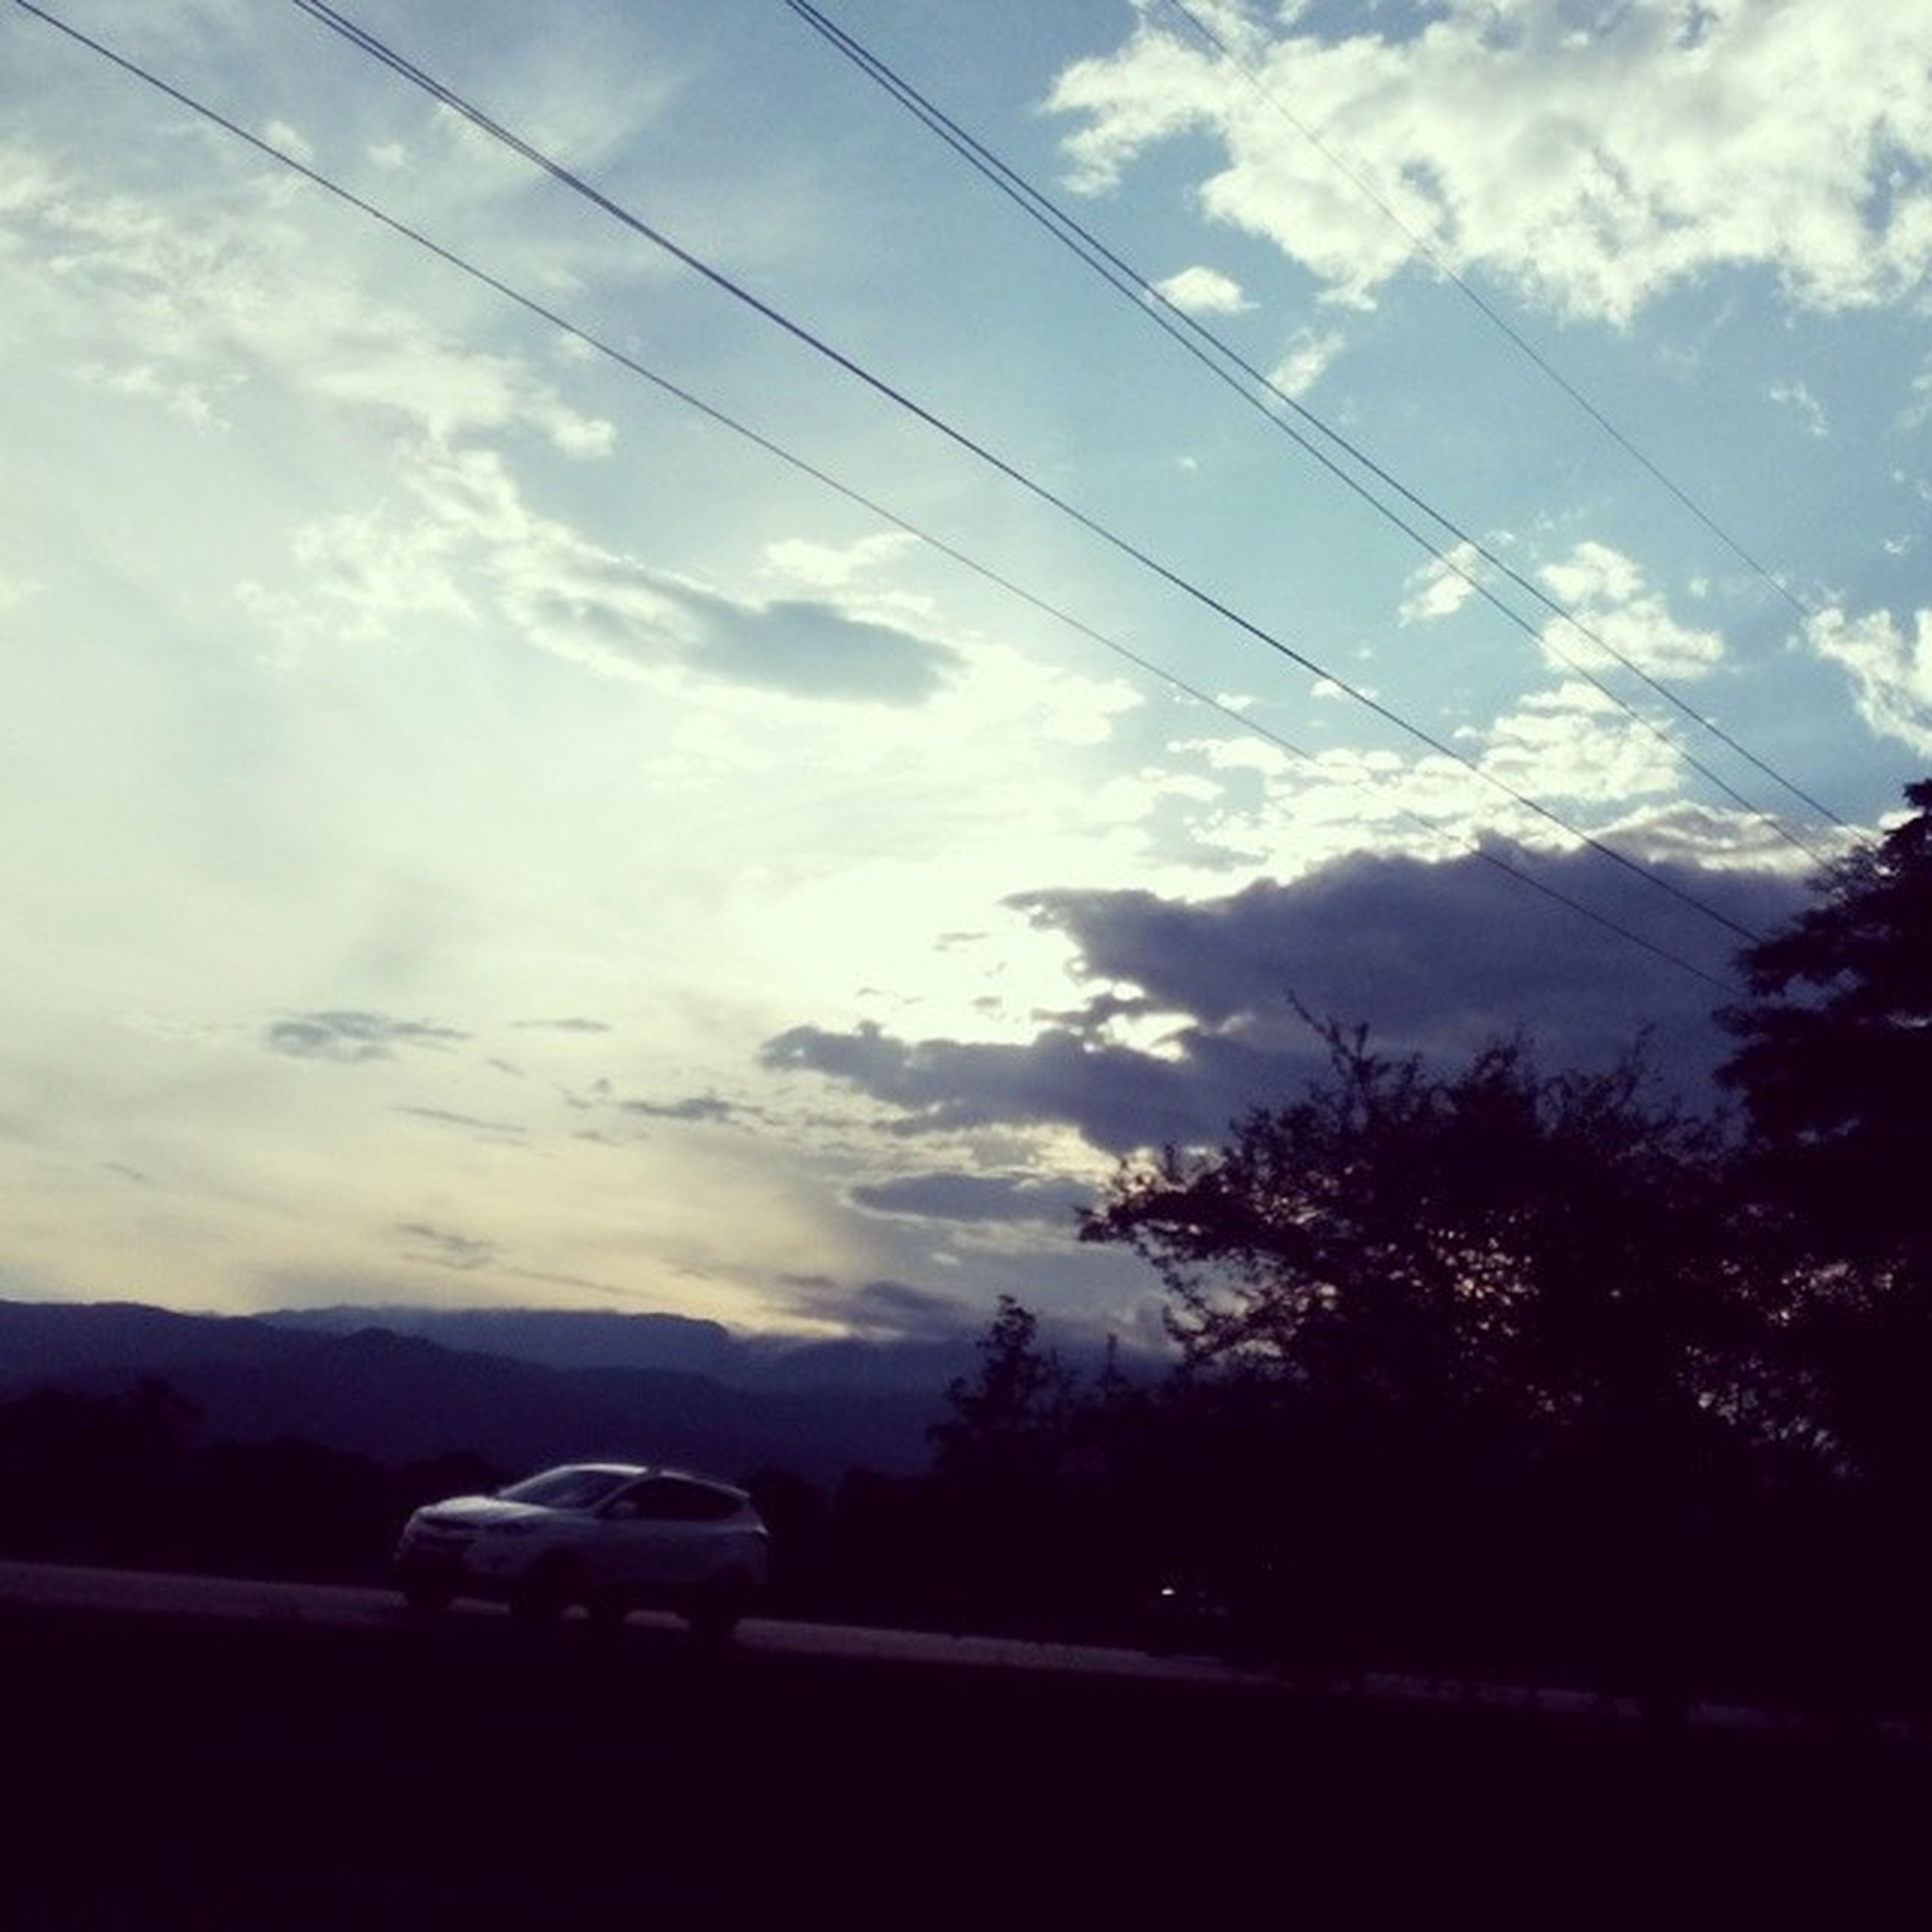 transportation, sky, tree, road, land vehicle, mode of transport, car, cloud - sky, silhouette, cloud, cloudy, tranquil scene, mountain, scenics, tranquility, nature, on the move, travel, beauty in nature, landscape